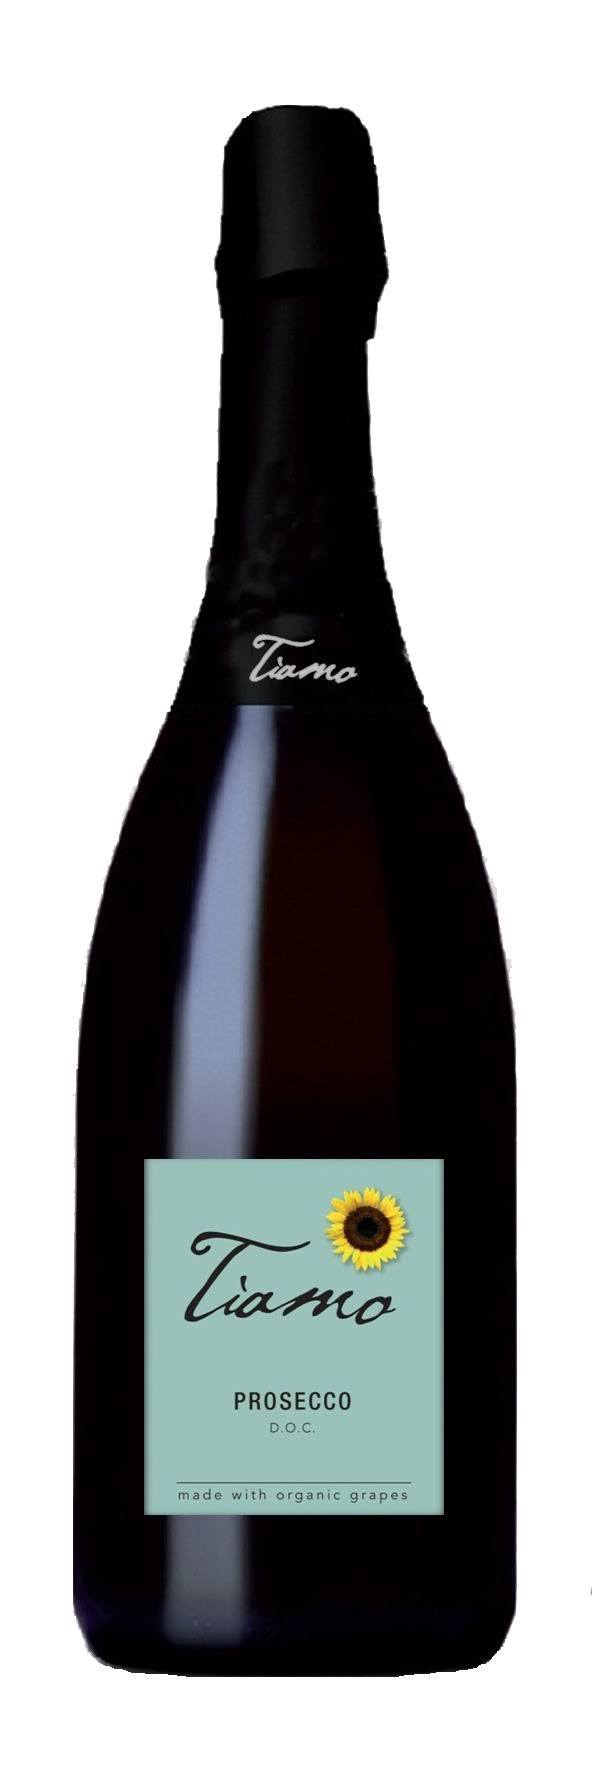 Tiamo Prosecco, Italy - 750 ml bottle